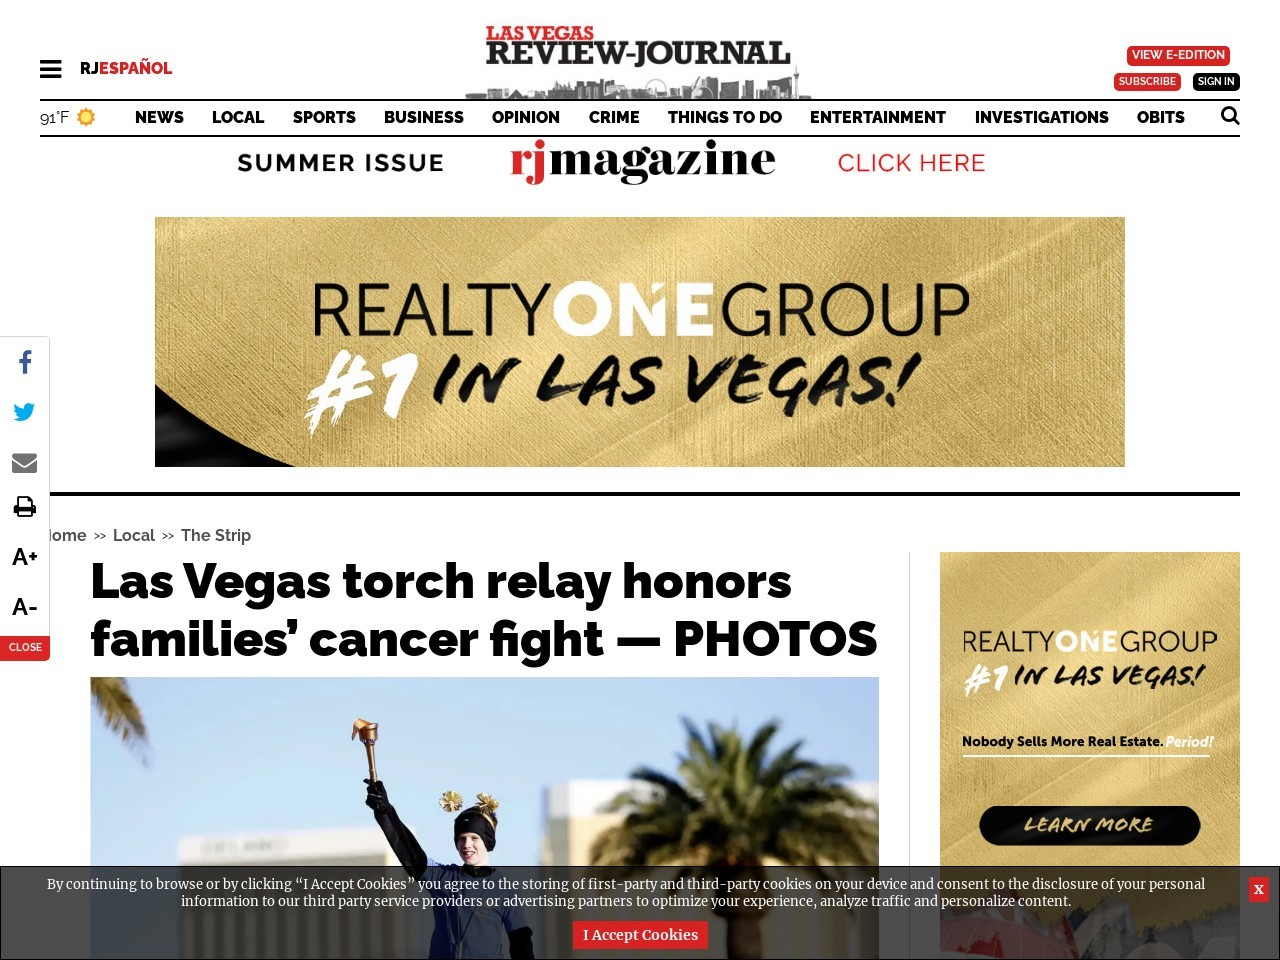 Las Vegas torch relay honors families' cancer fight — PHOTOS